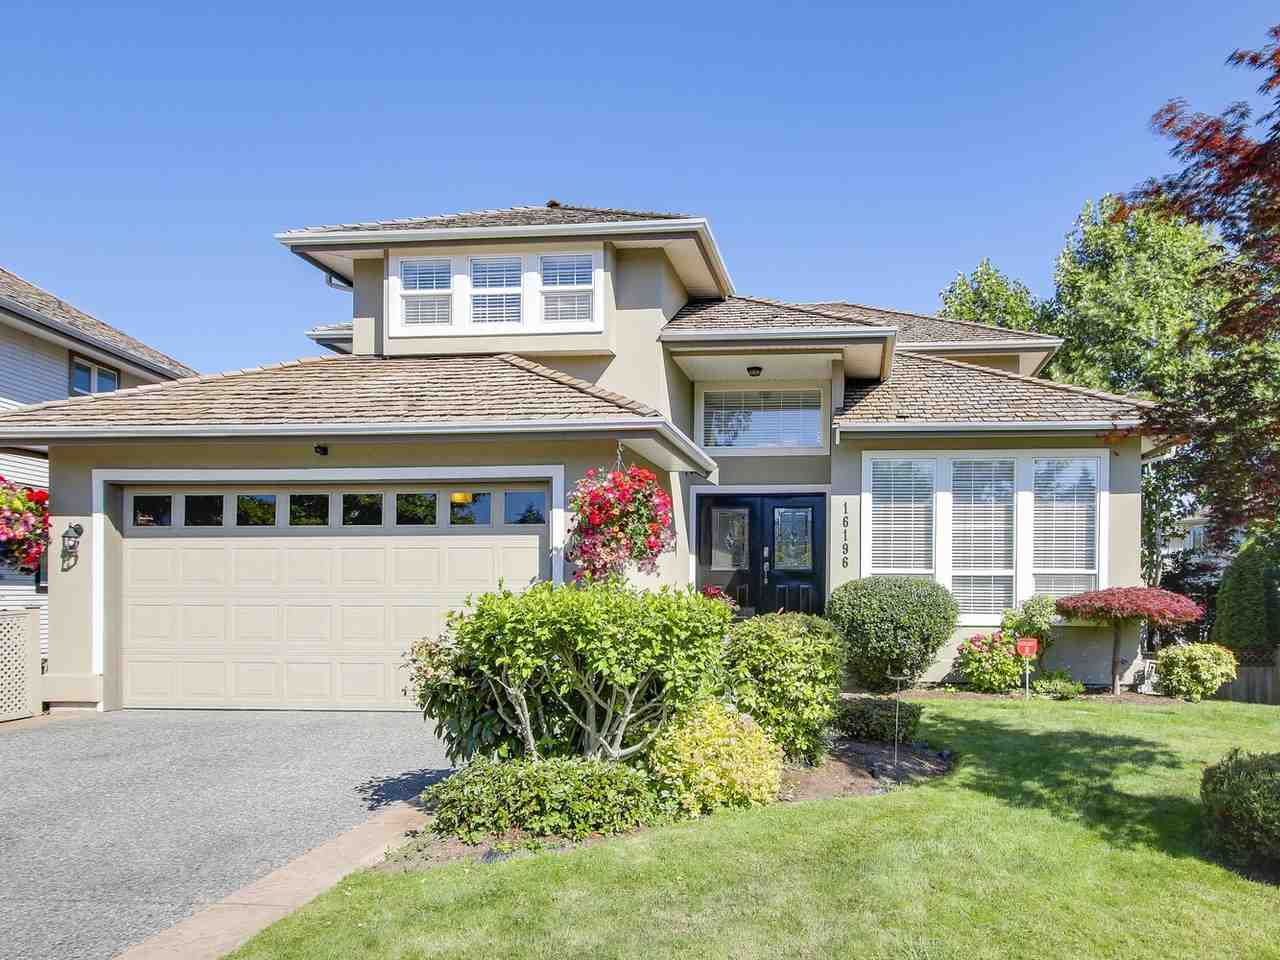 Detached at 16196 14A AVENUE, South Surrey White Rock, British Columbia. Image 1